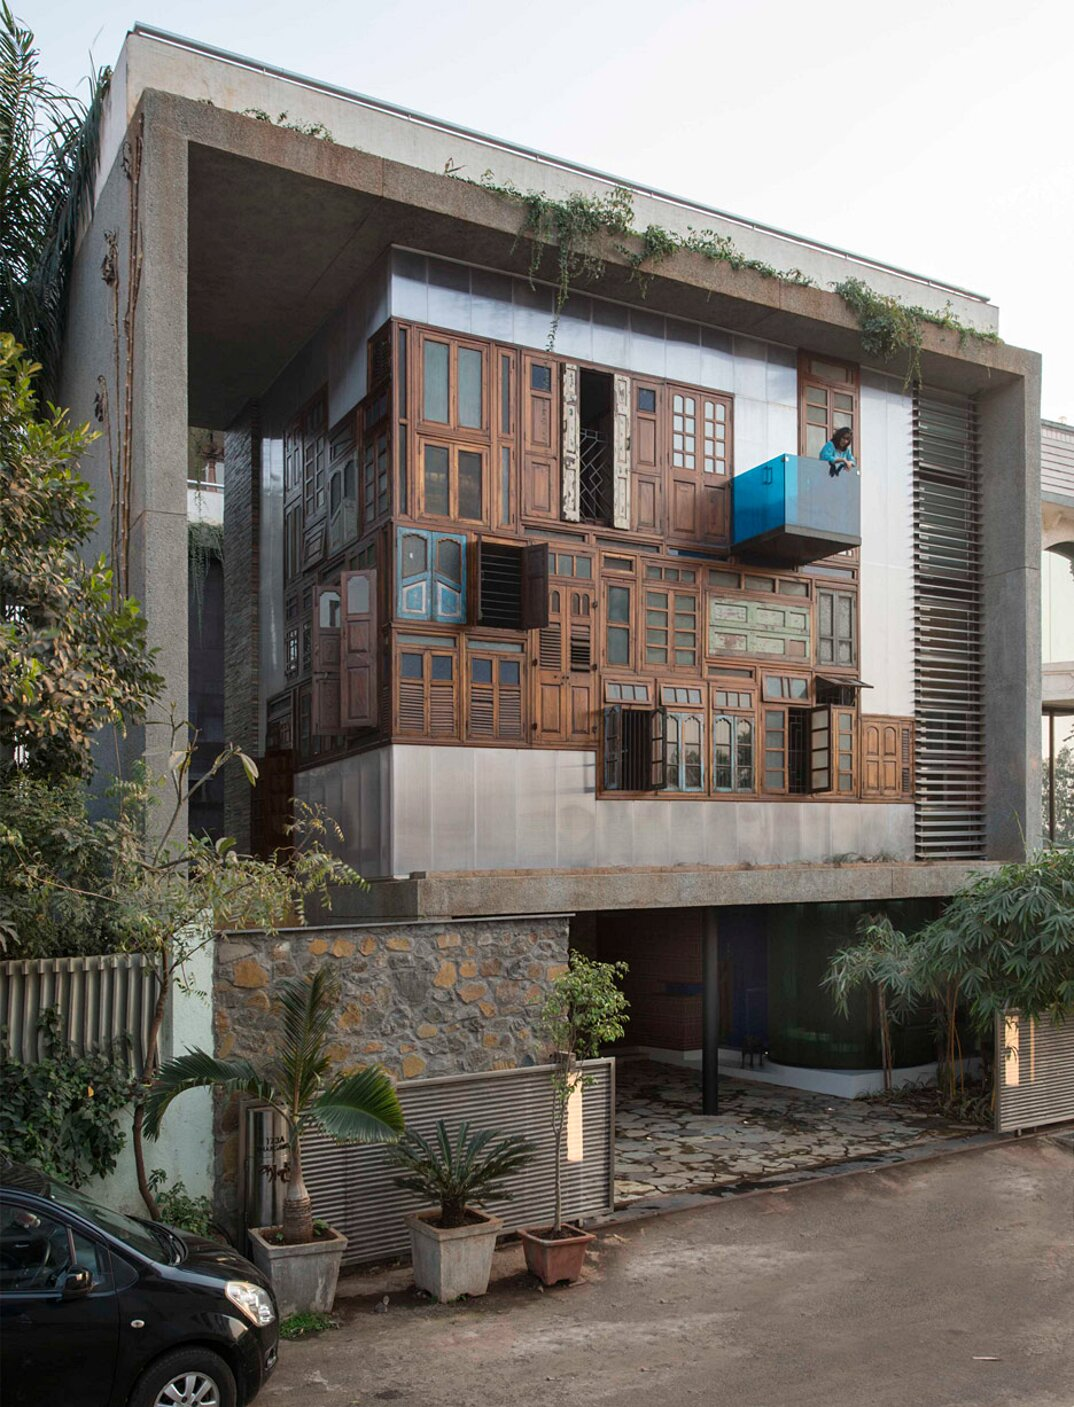 edificio-materiali-riciclati-architettura-sostenibile-mumbai-sps-architects-22